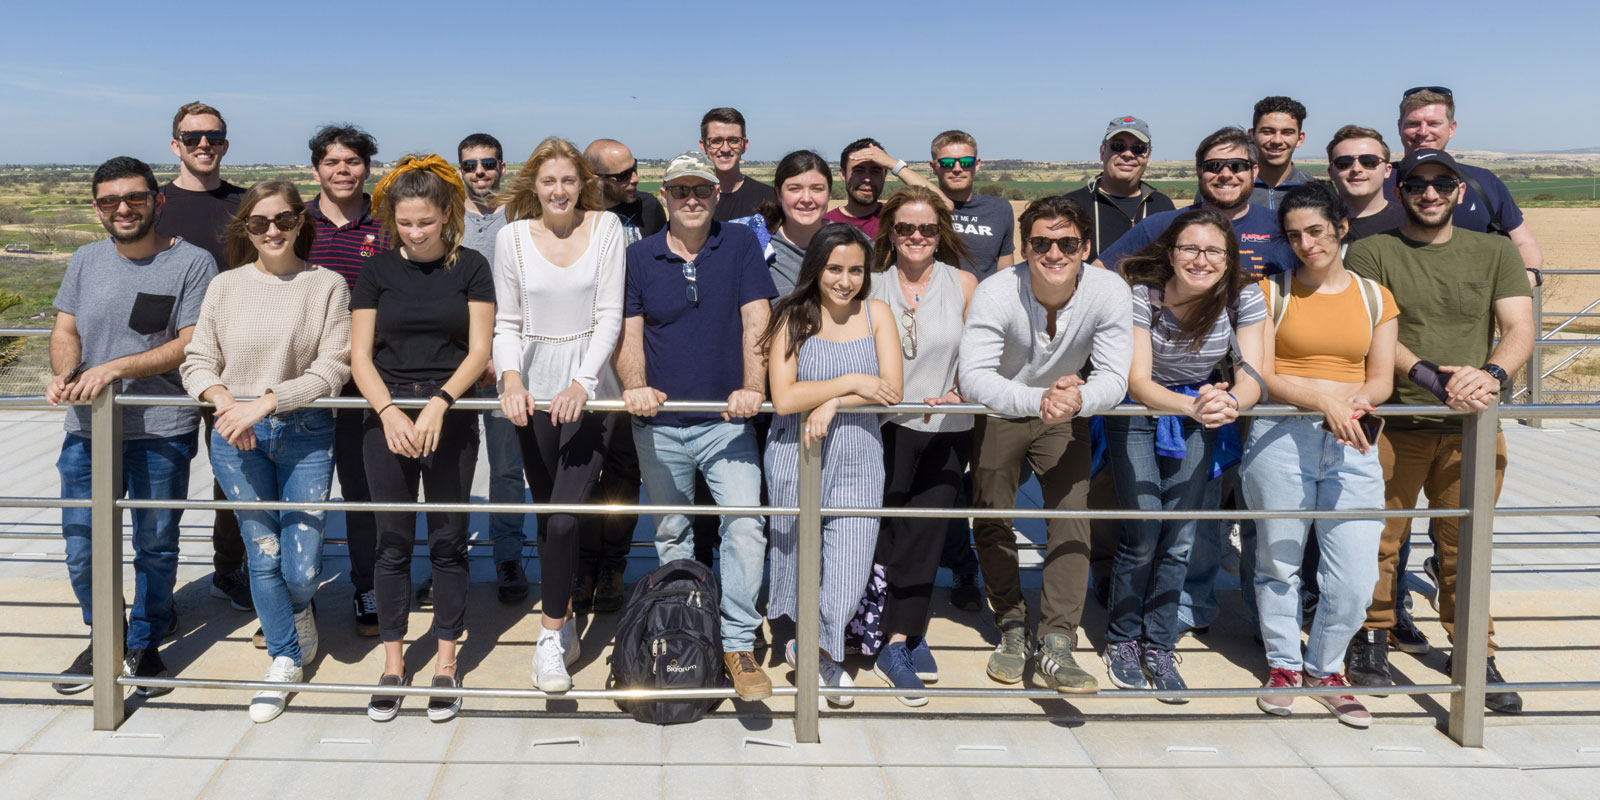 USD alumnus Curtis Chambers alongside students and faculty on an Israel study abroad trip